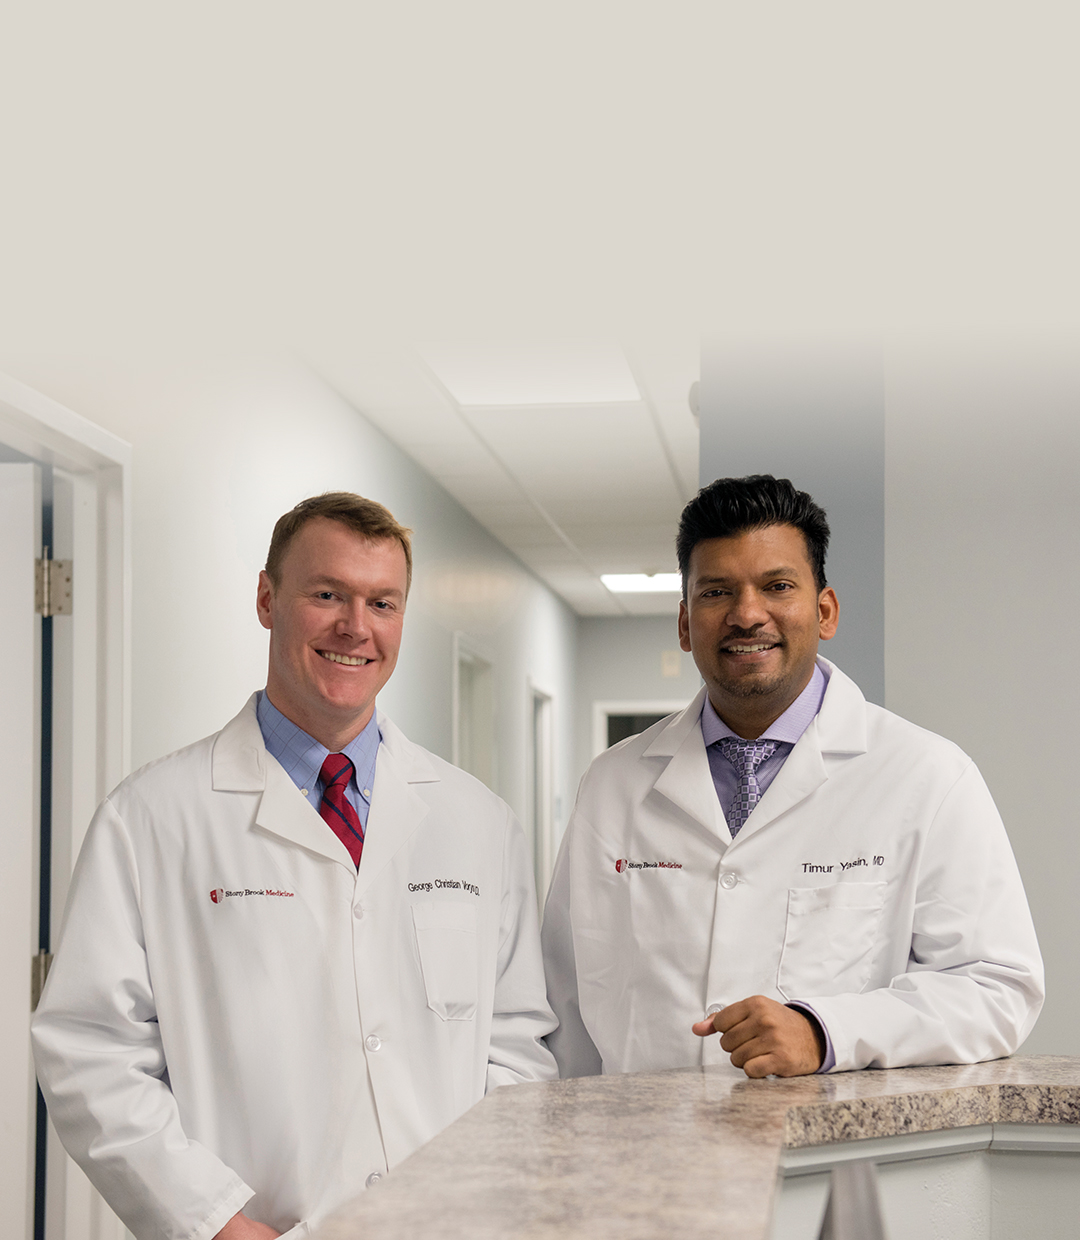 Comprehensive Orthopedic Care With Unmatched Expertise